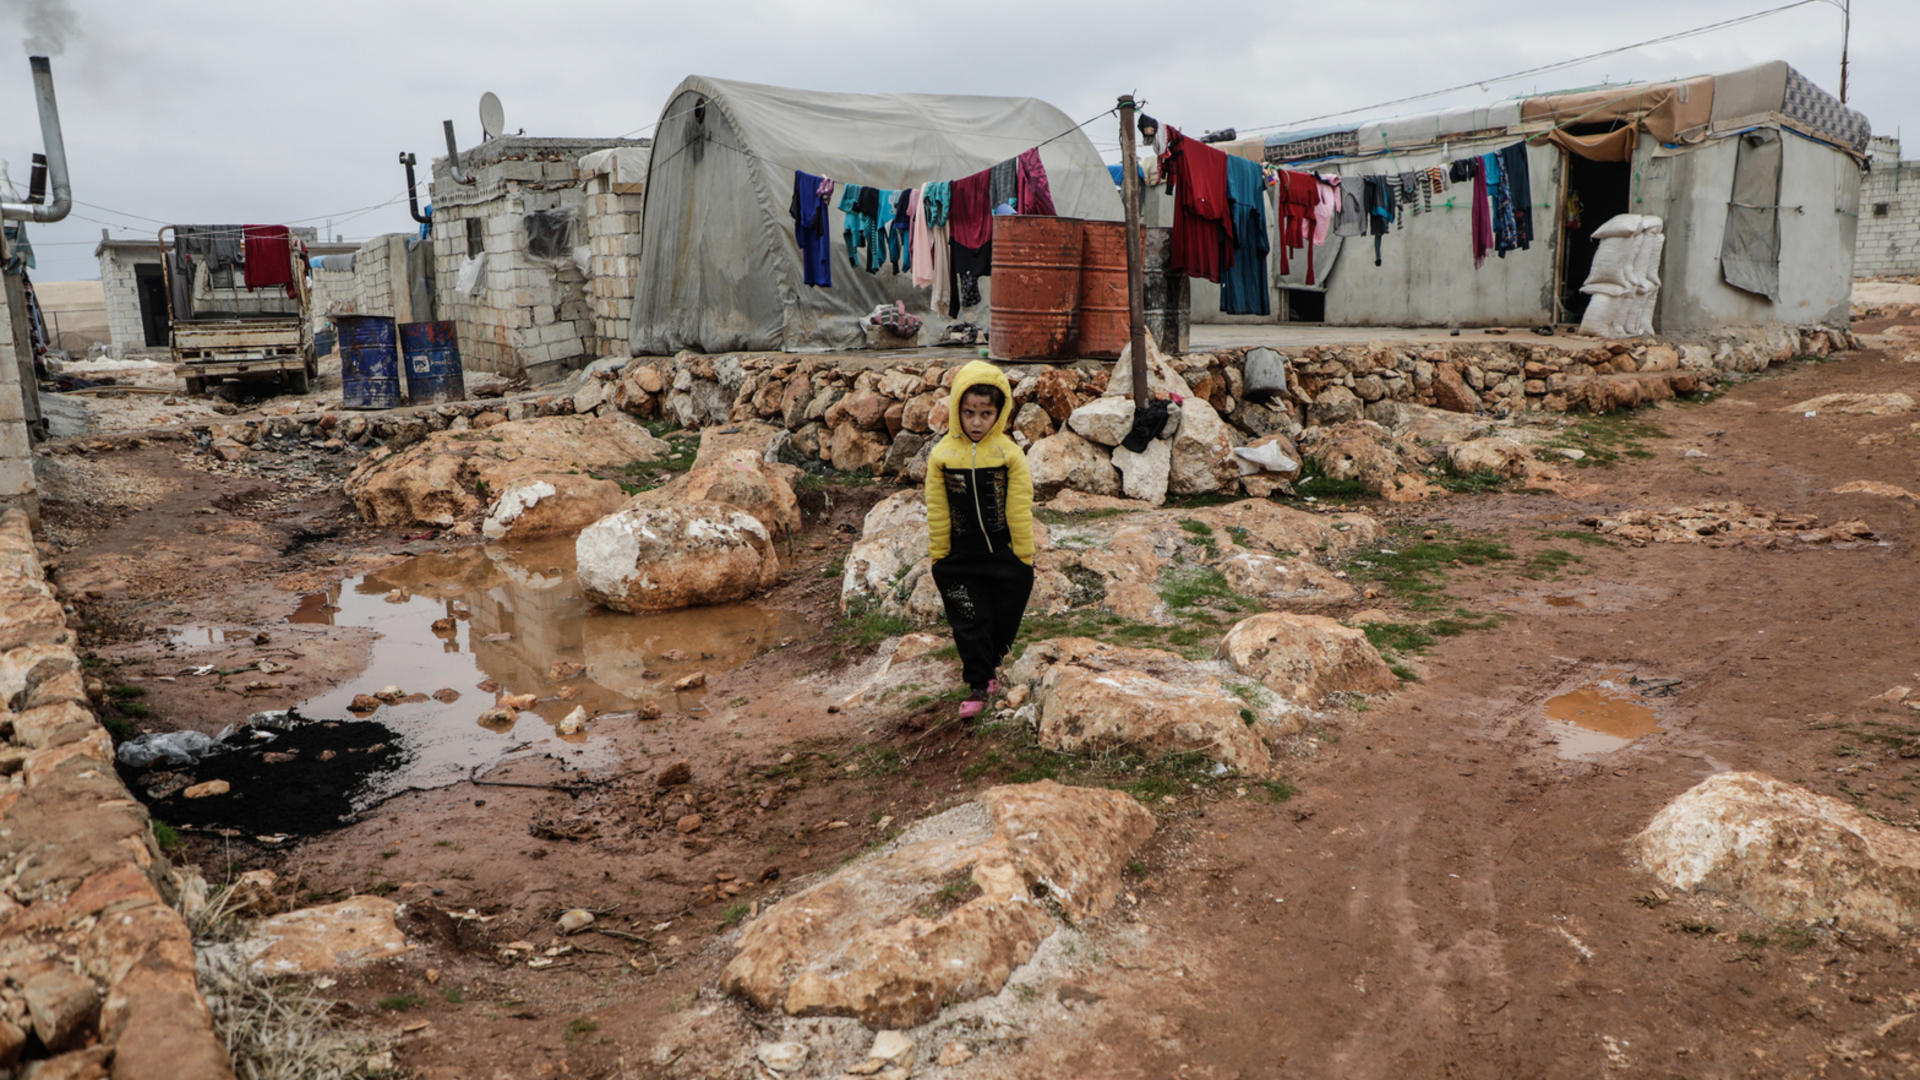 A Syrian boy walks across muddy ground amid tents in Idlib